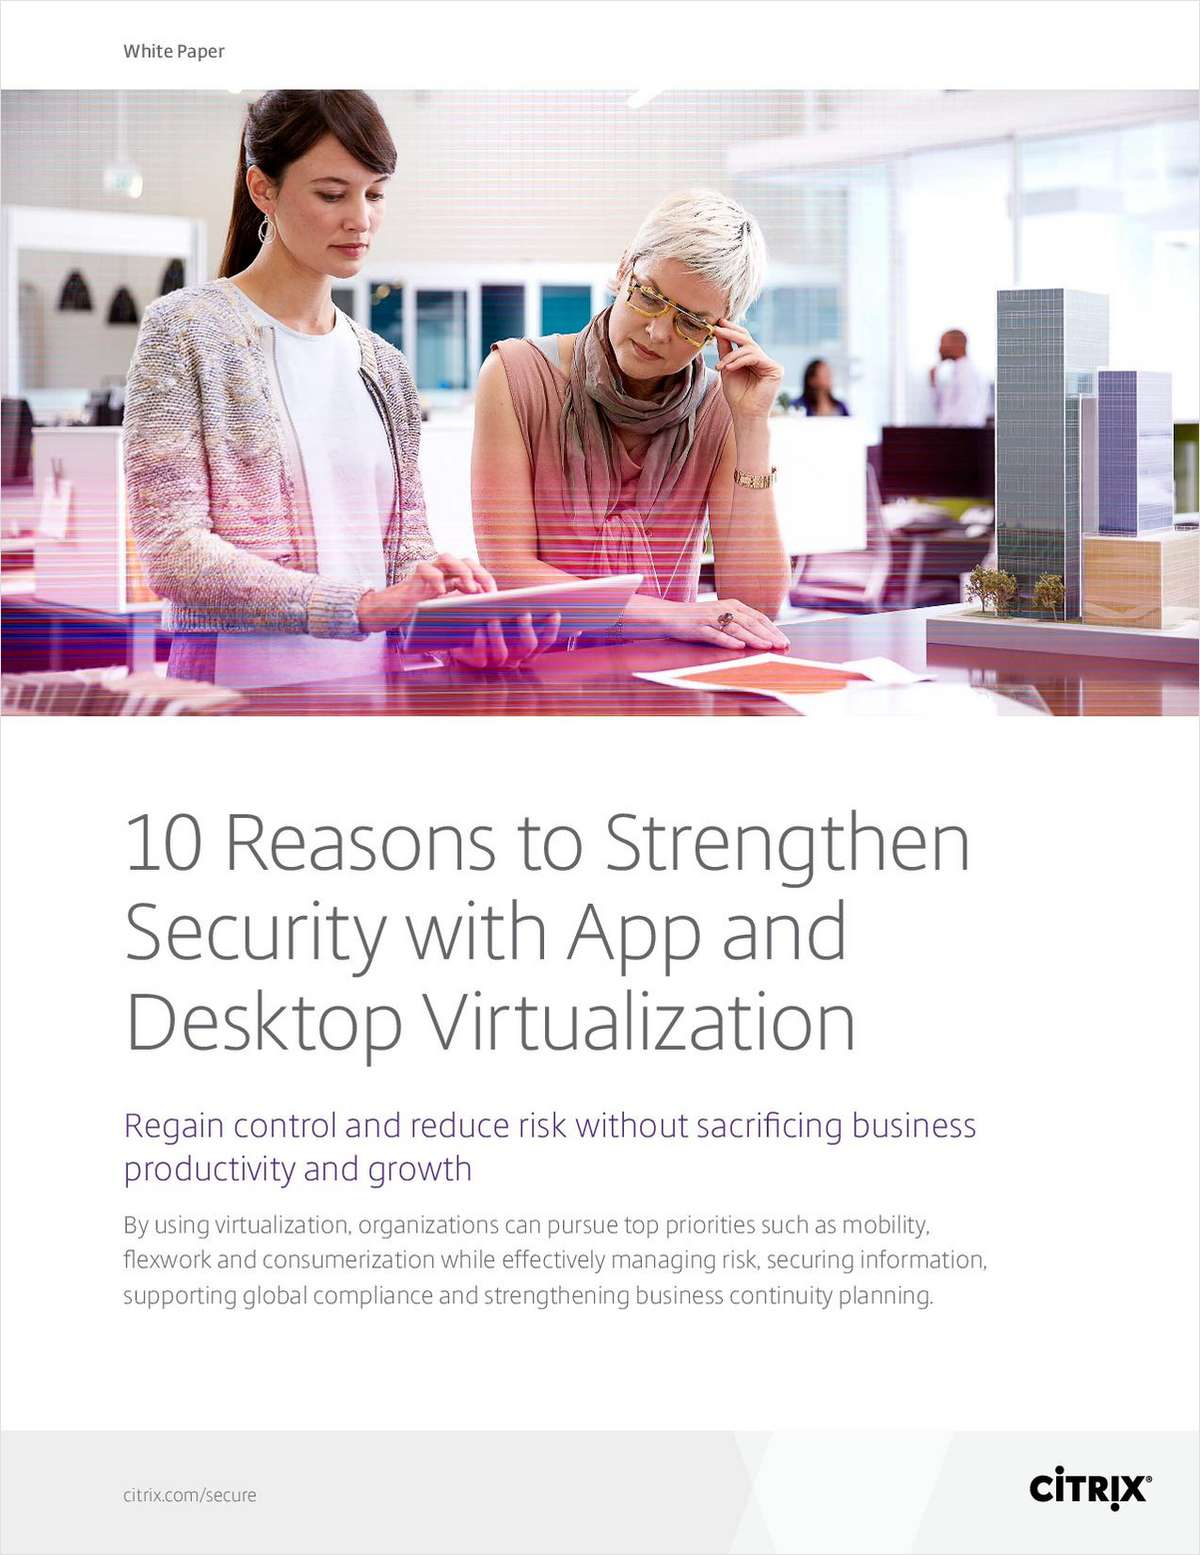 Top 10 Reasons to Strengthen Information Security with App and Desktop Virtualization